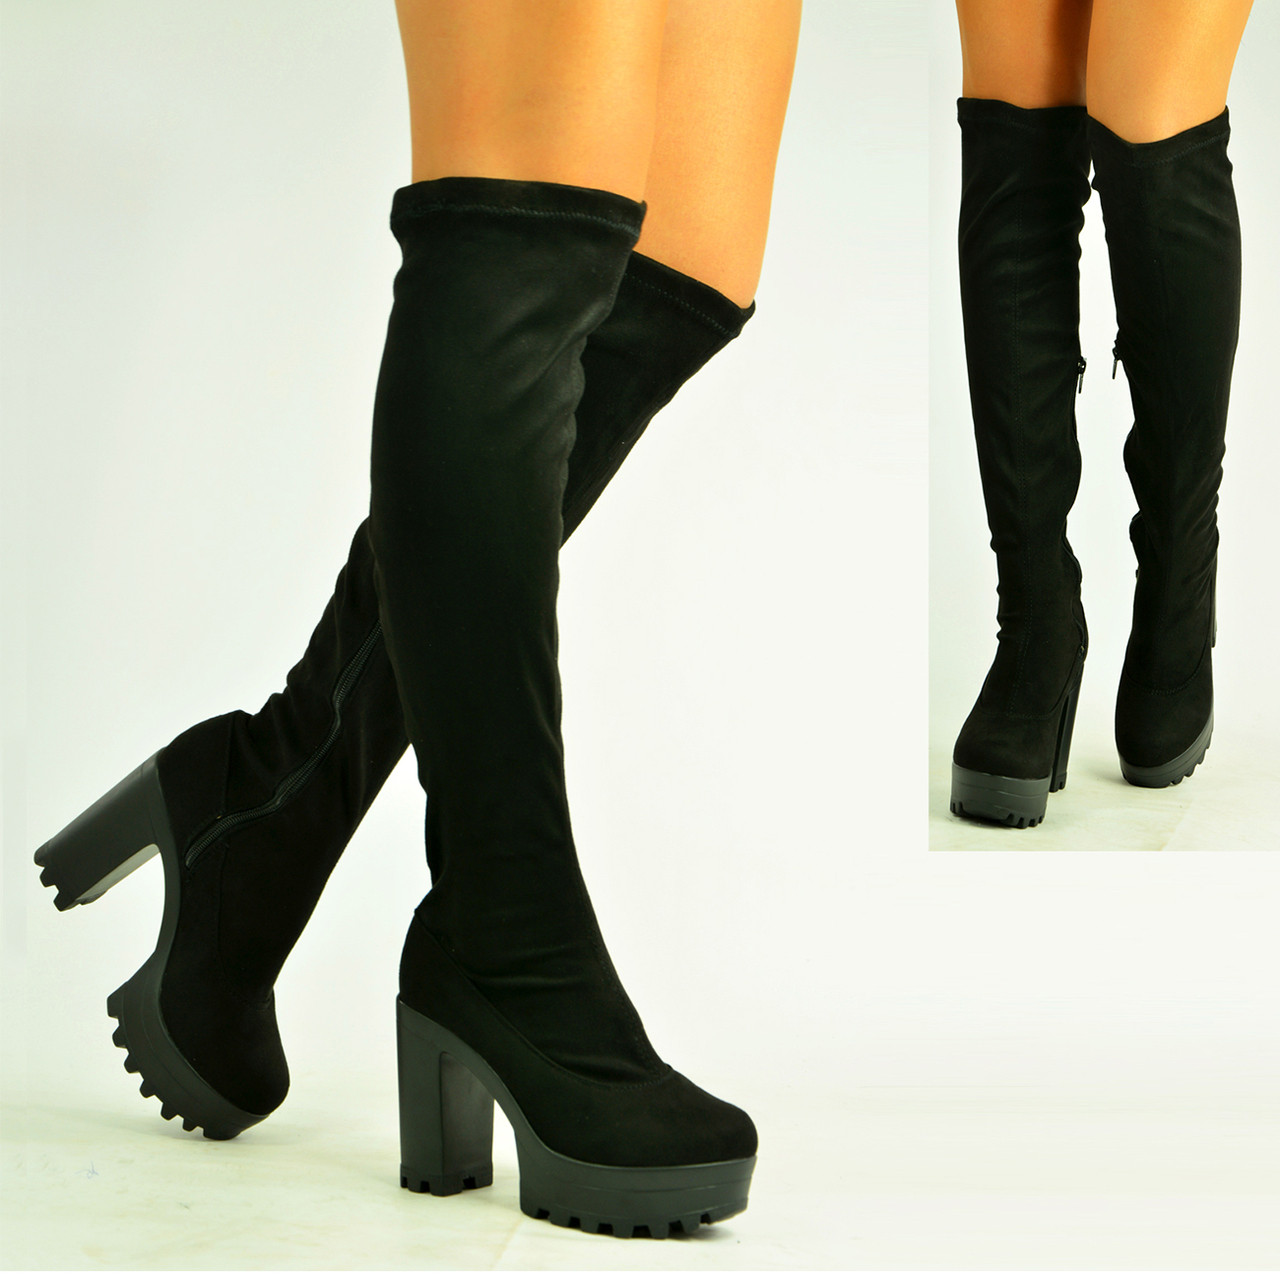 1f49a6884333 Brand New Womens Grey Suede Low Flat Heel Over The Knee Boots - £18